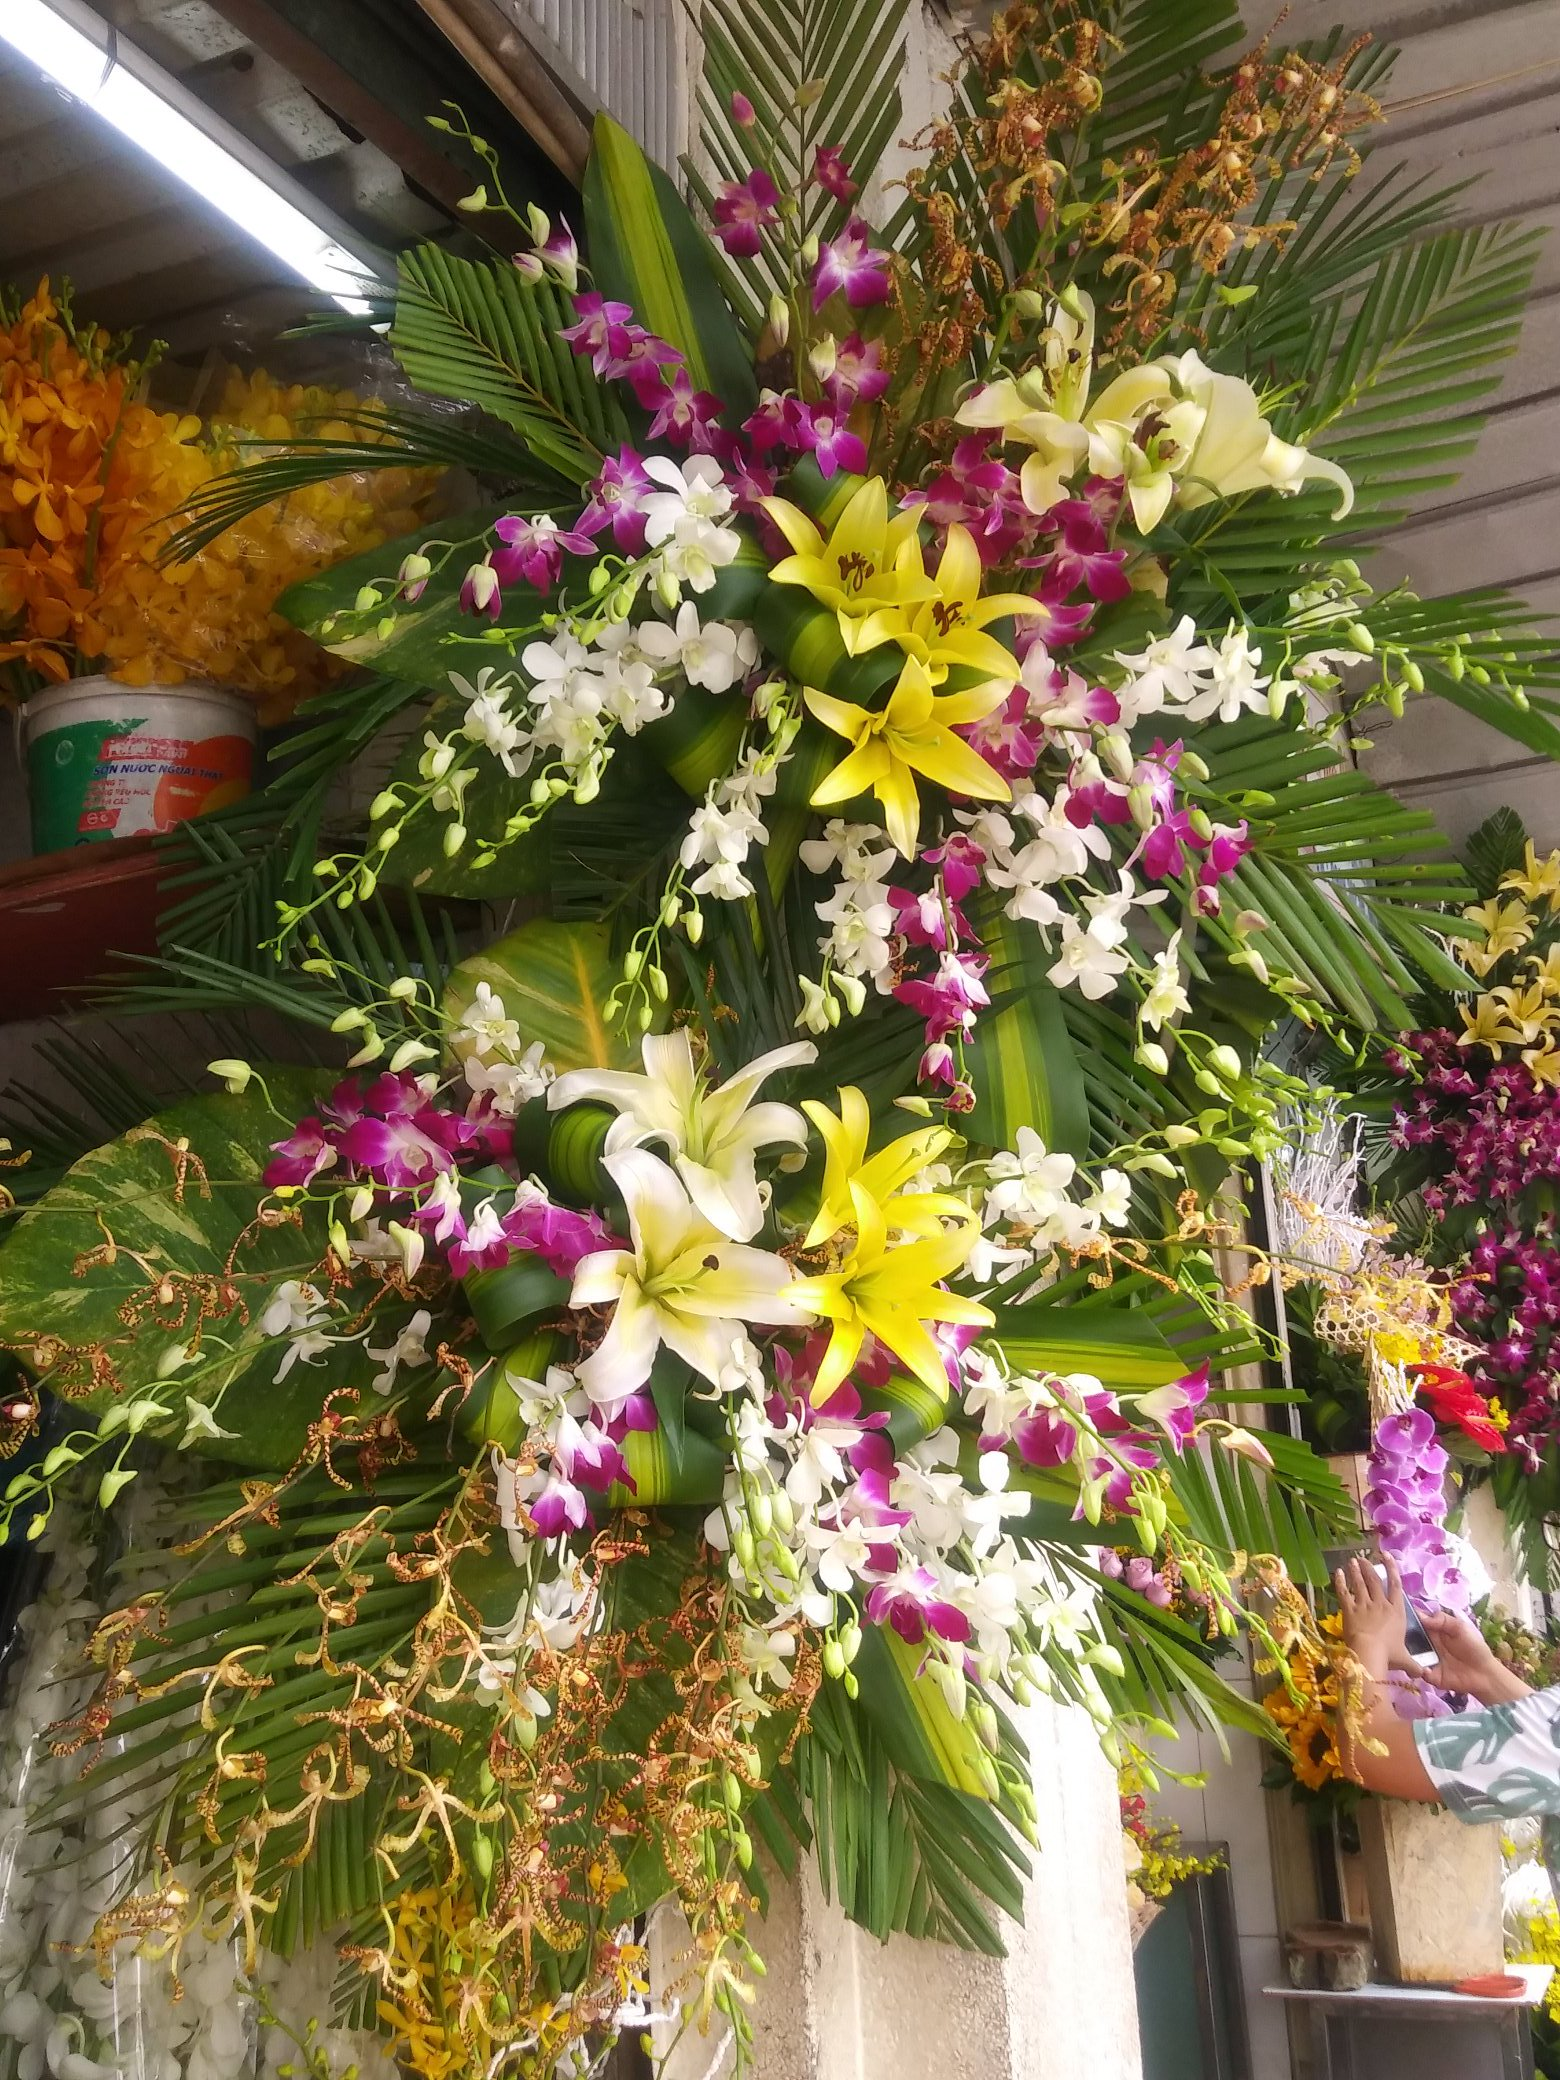 You can buy stunning  flower arrangements off the shelves at the market